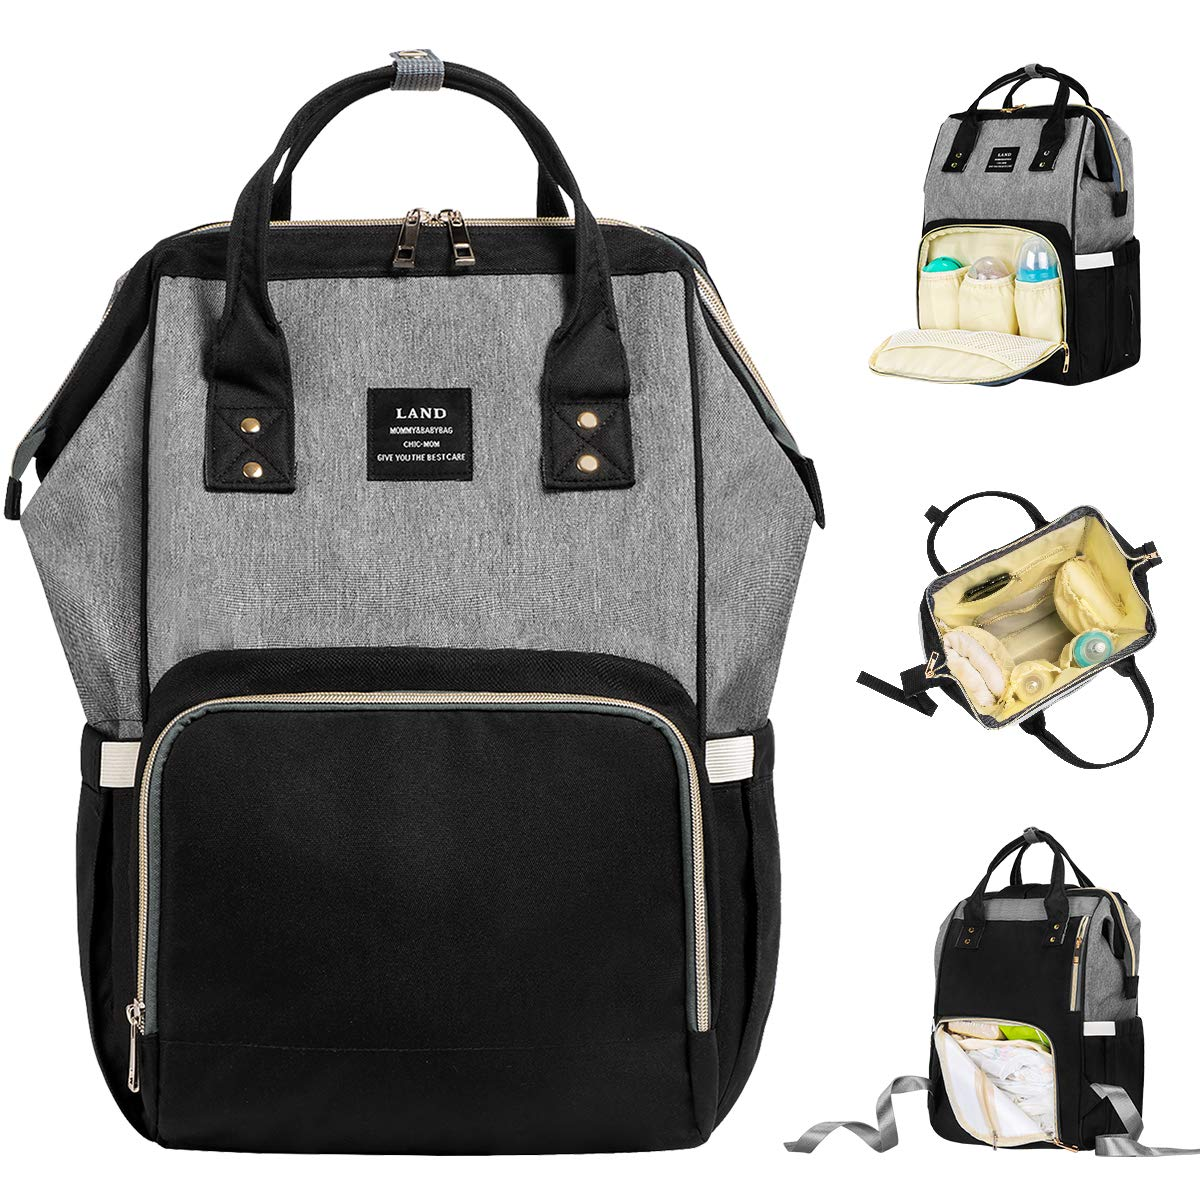 9d966cd774b1 Amazon.com   Landuo Diaper Bag Multi-Function Waterproof Travel Backpack  Large Nappy Bags for Baby Care